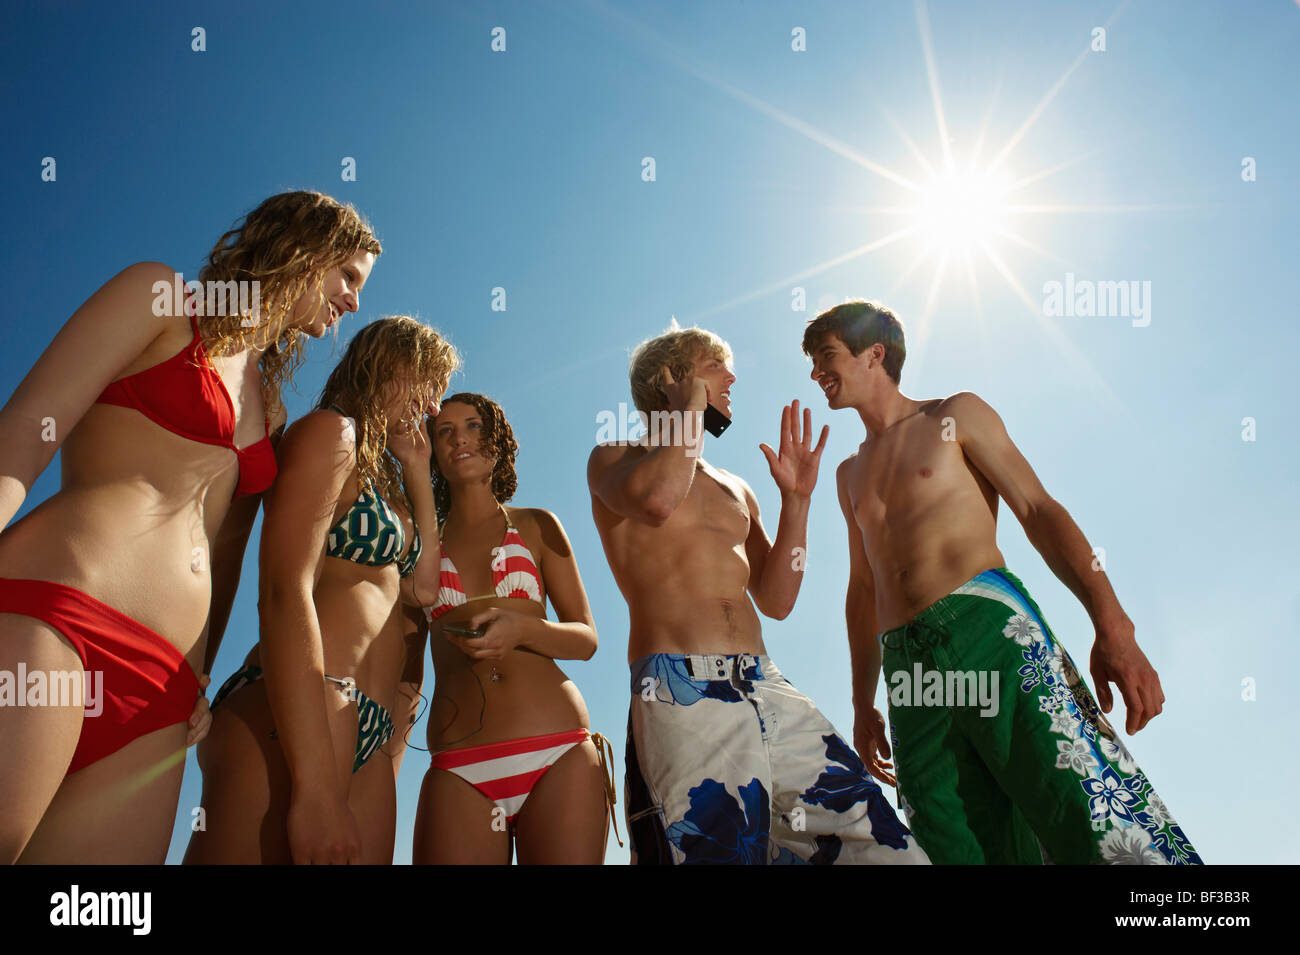 group of people in swim wear - Stock Image